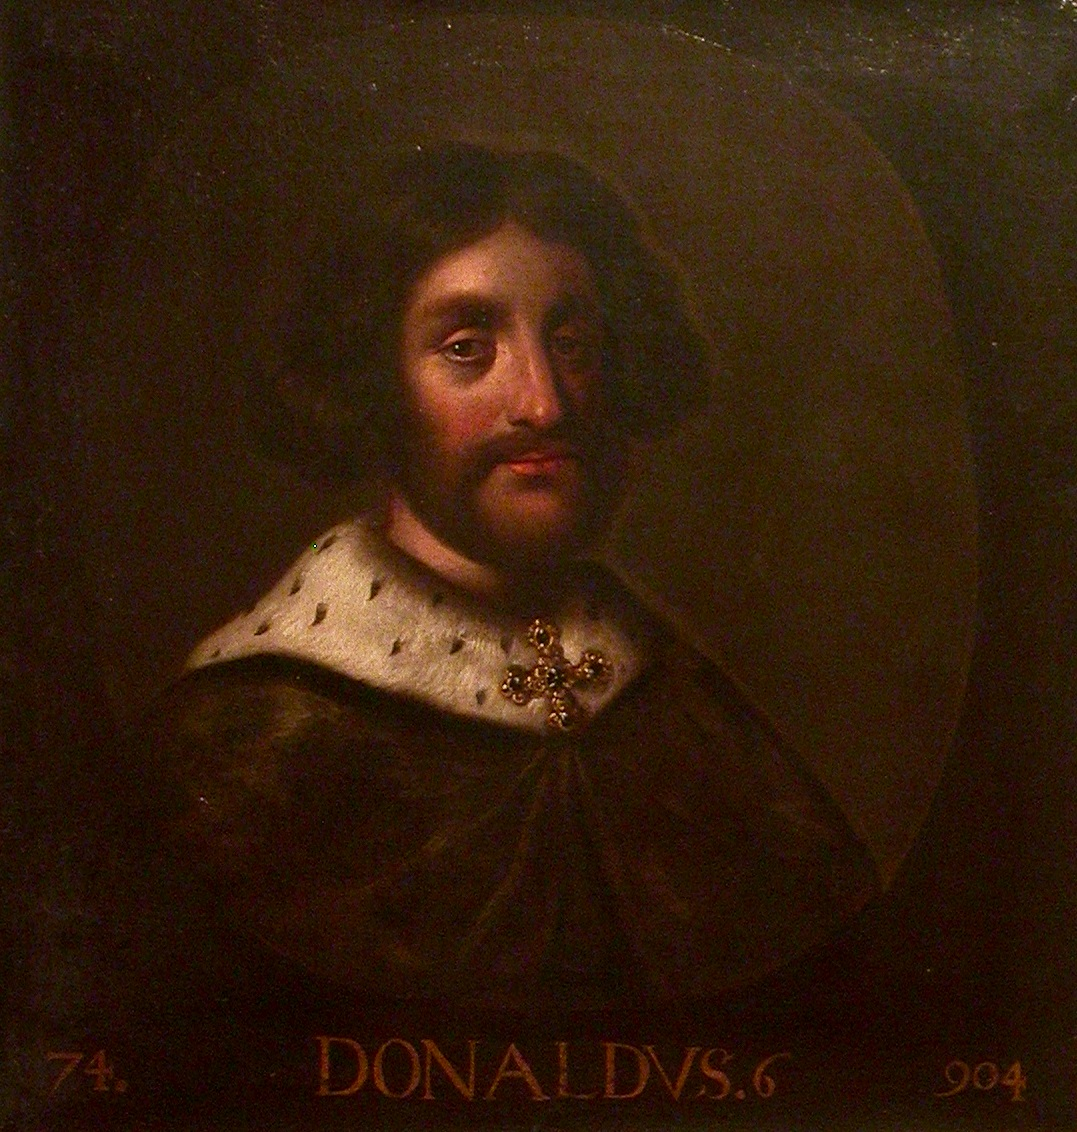 Donald_II_of_Scotland_(Holyrood) 35th great-grandfather